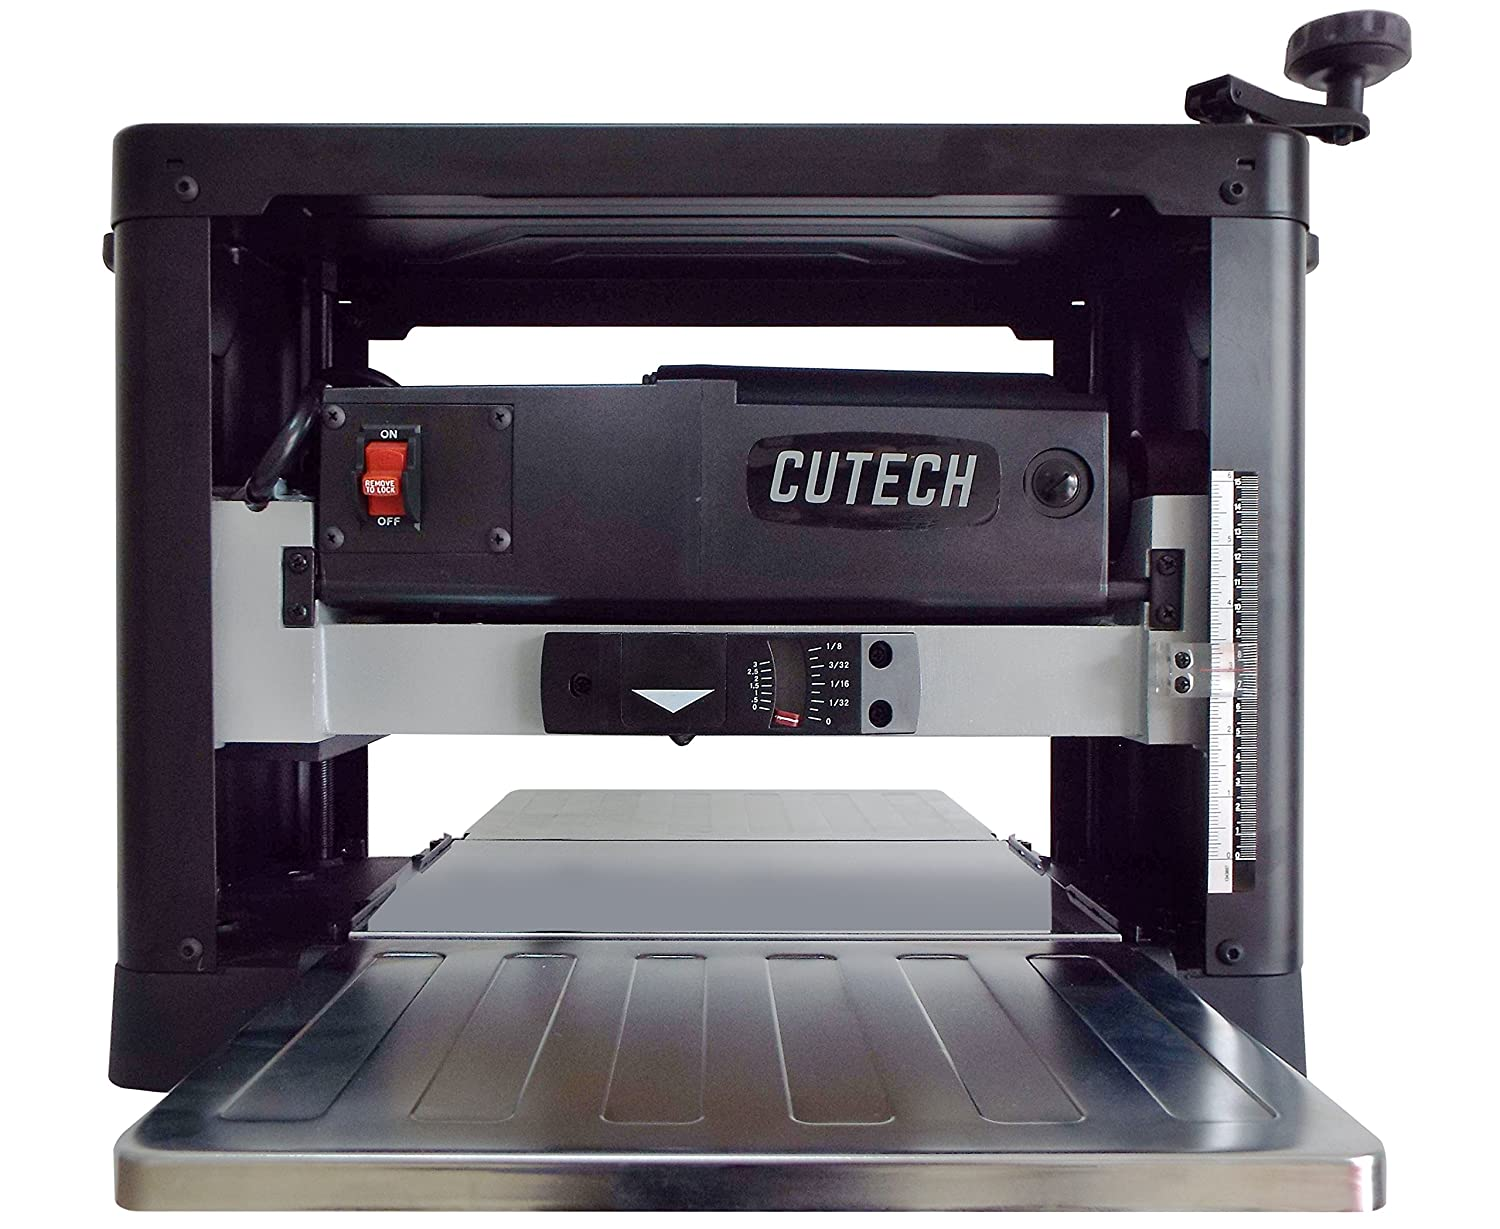 Cutech 40700HC-CT 12 1 2 Spiral Cutterhead Planer with Carbide Tips